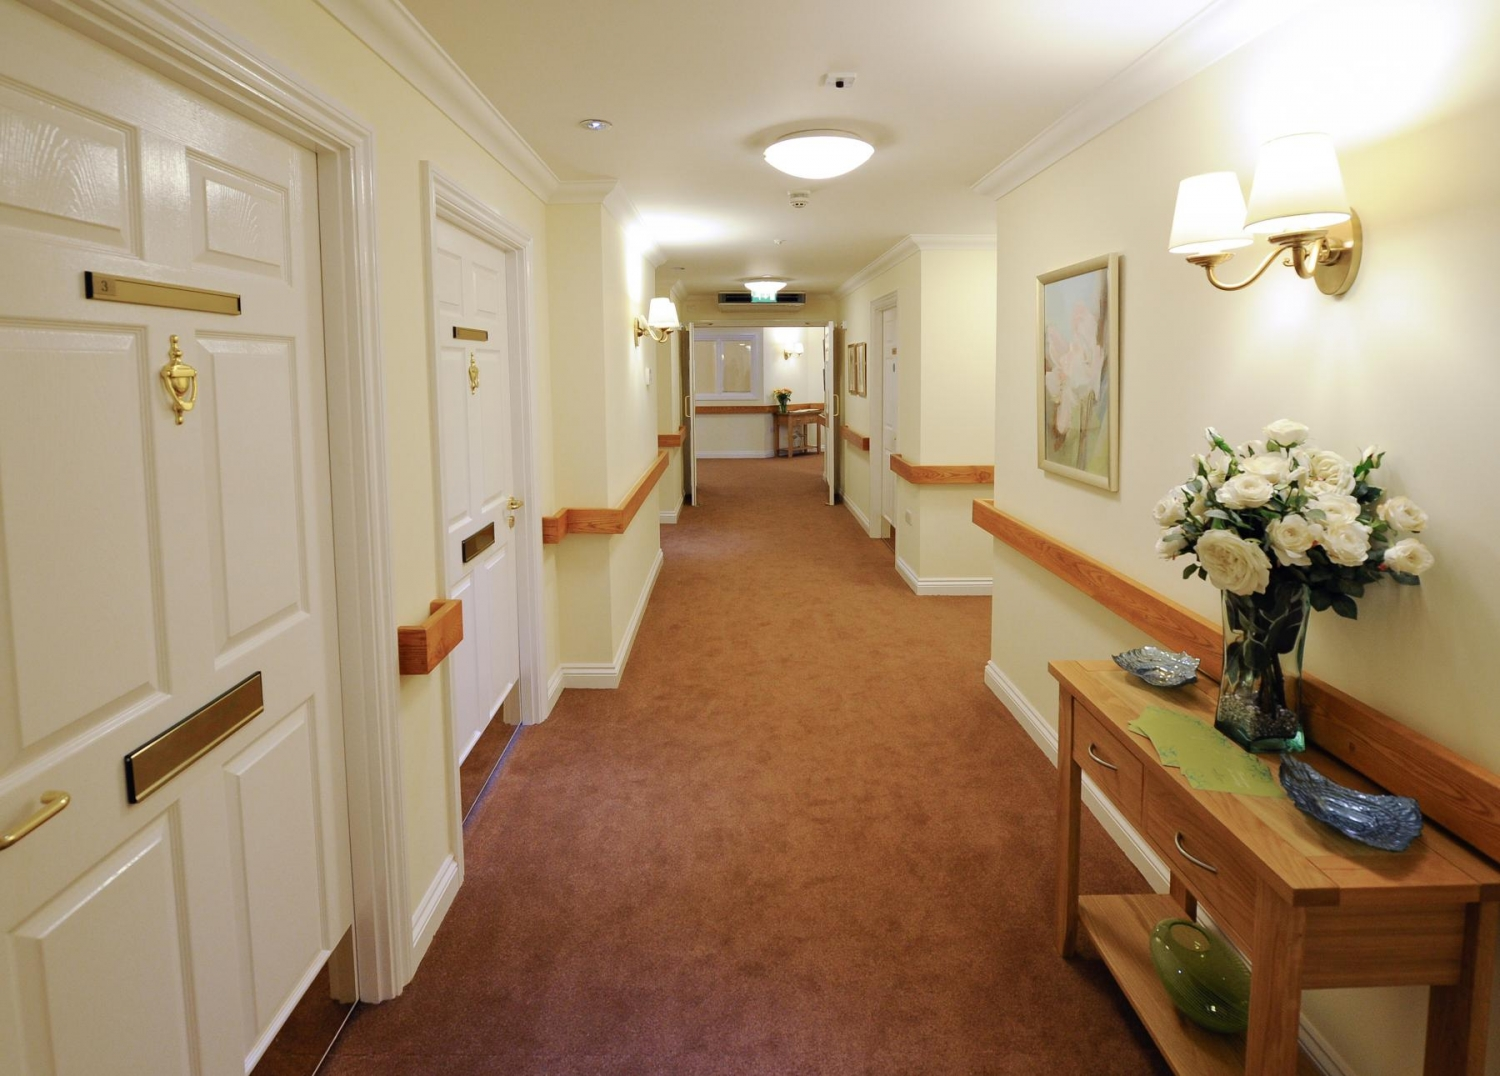 the nursing home a nice place Find senior home care services that are right for your loved ones nurse next door offers a variety of home care services to suit your needs find out more.